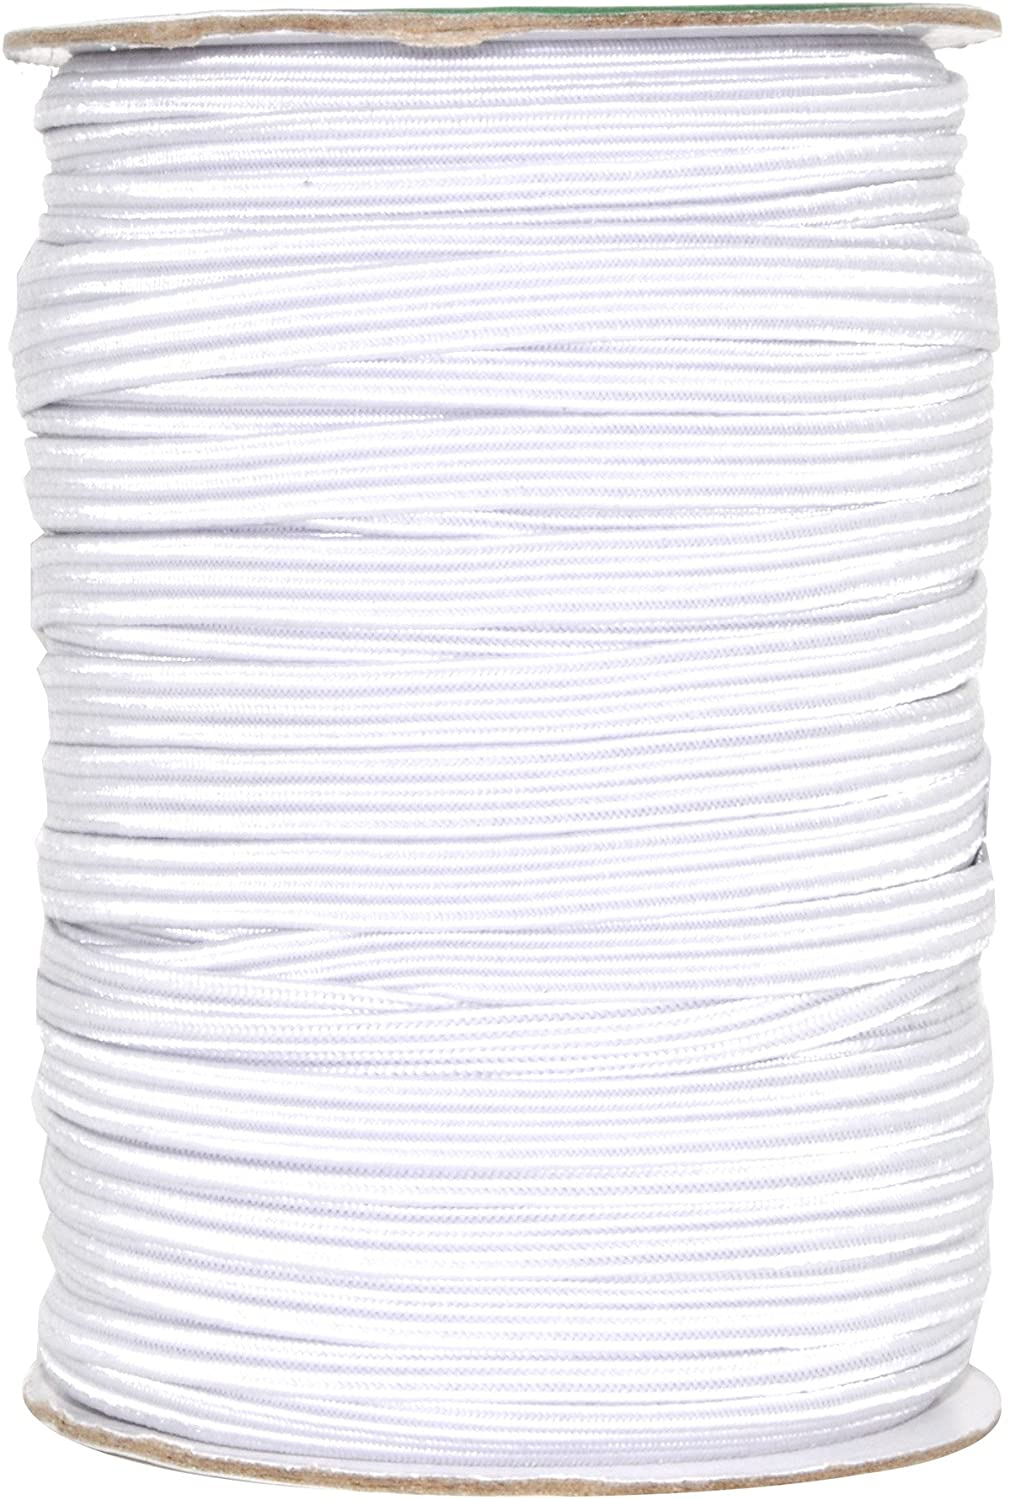 Mandala Crafts Flat Elastic Band, Braided Stretch Strap Cord Roll for Sewing and Crafting (1/4 inch 6mm 50 Yards, White)